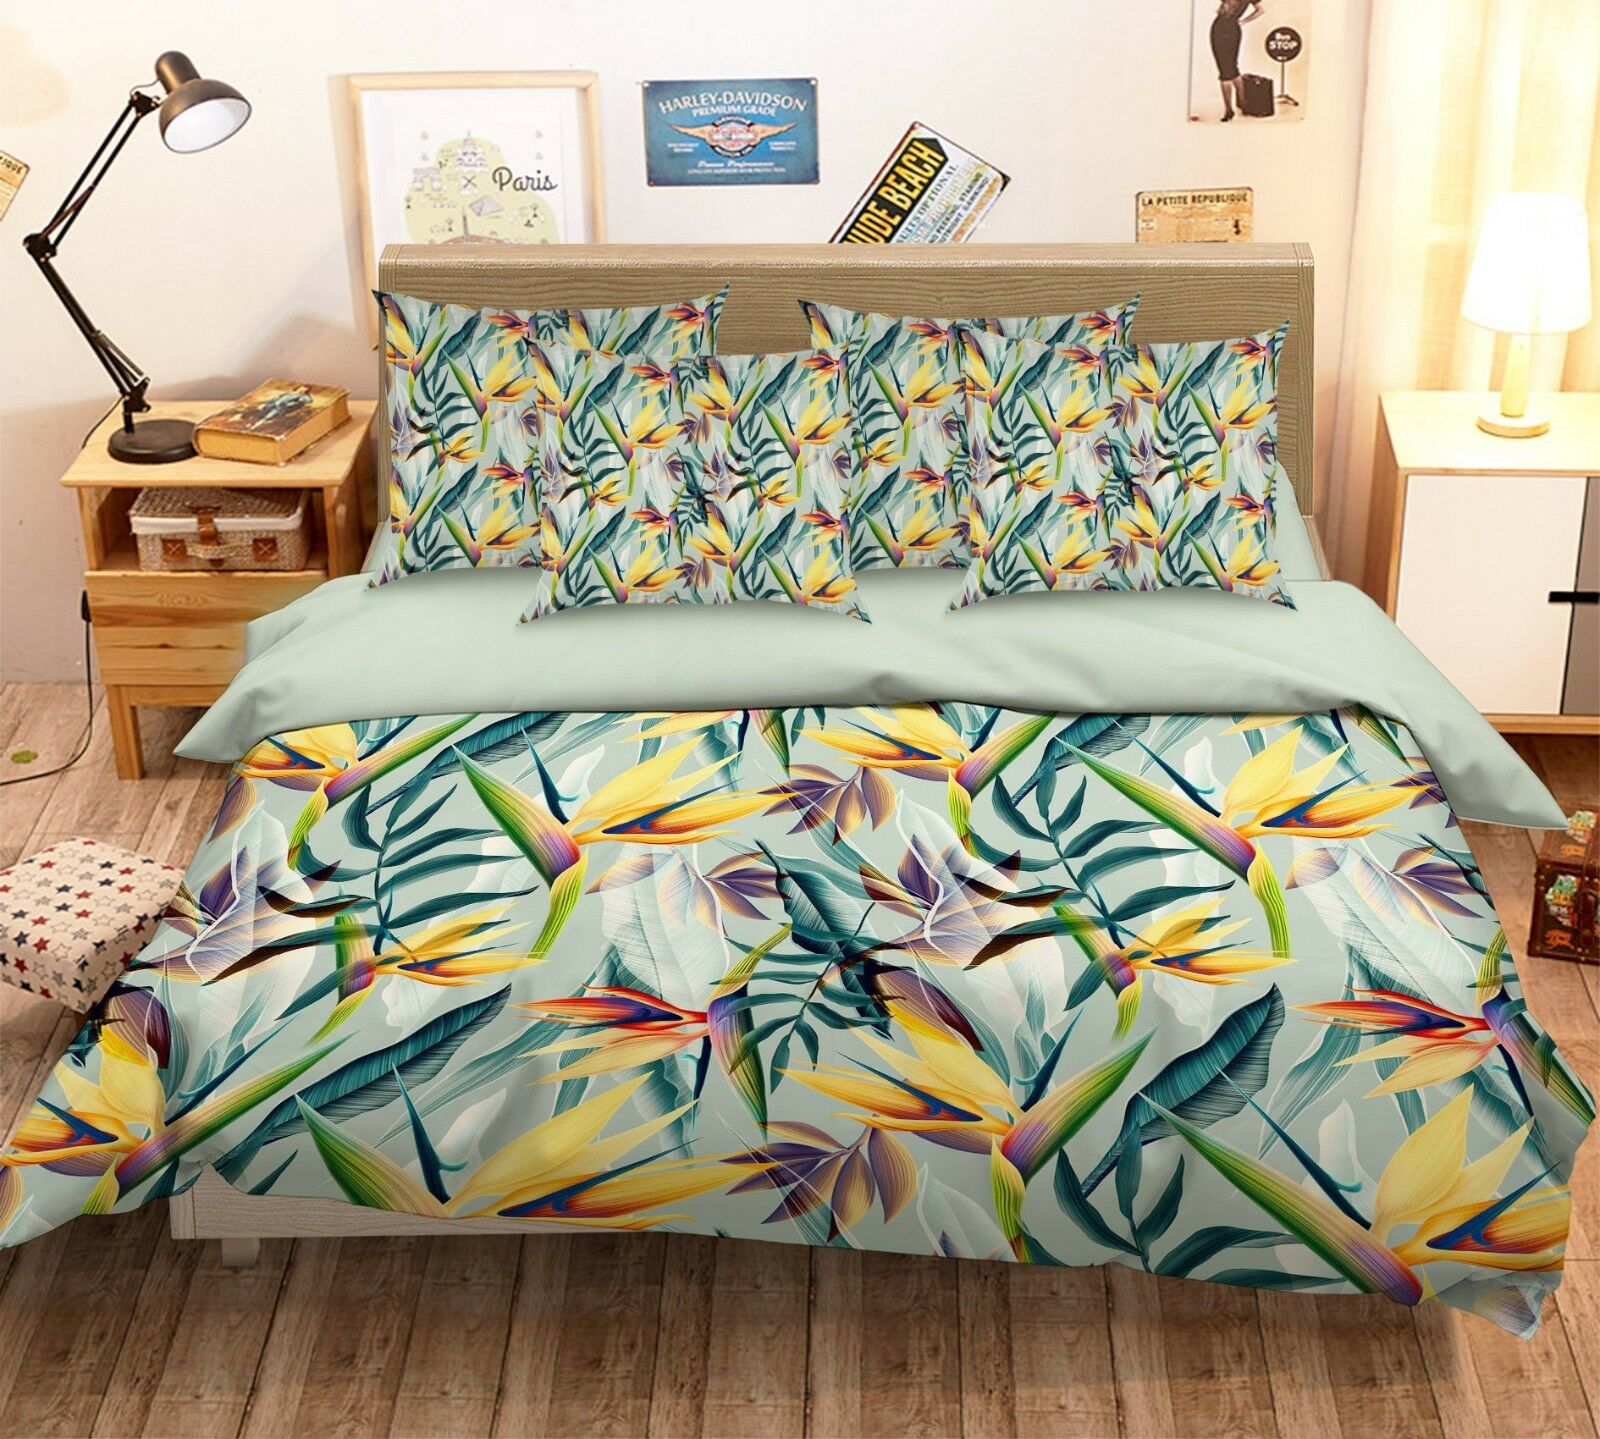 3D Flower Leaf 544 Bed Pillowcases Quilt Duvet Cover Set Single Queen King AU